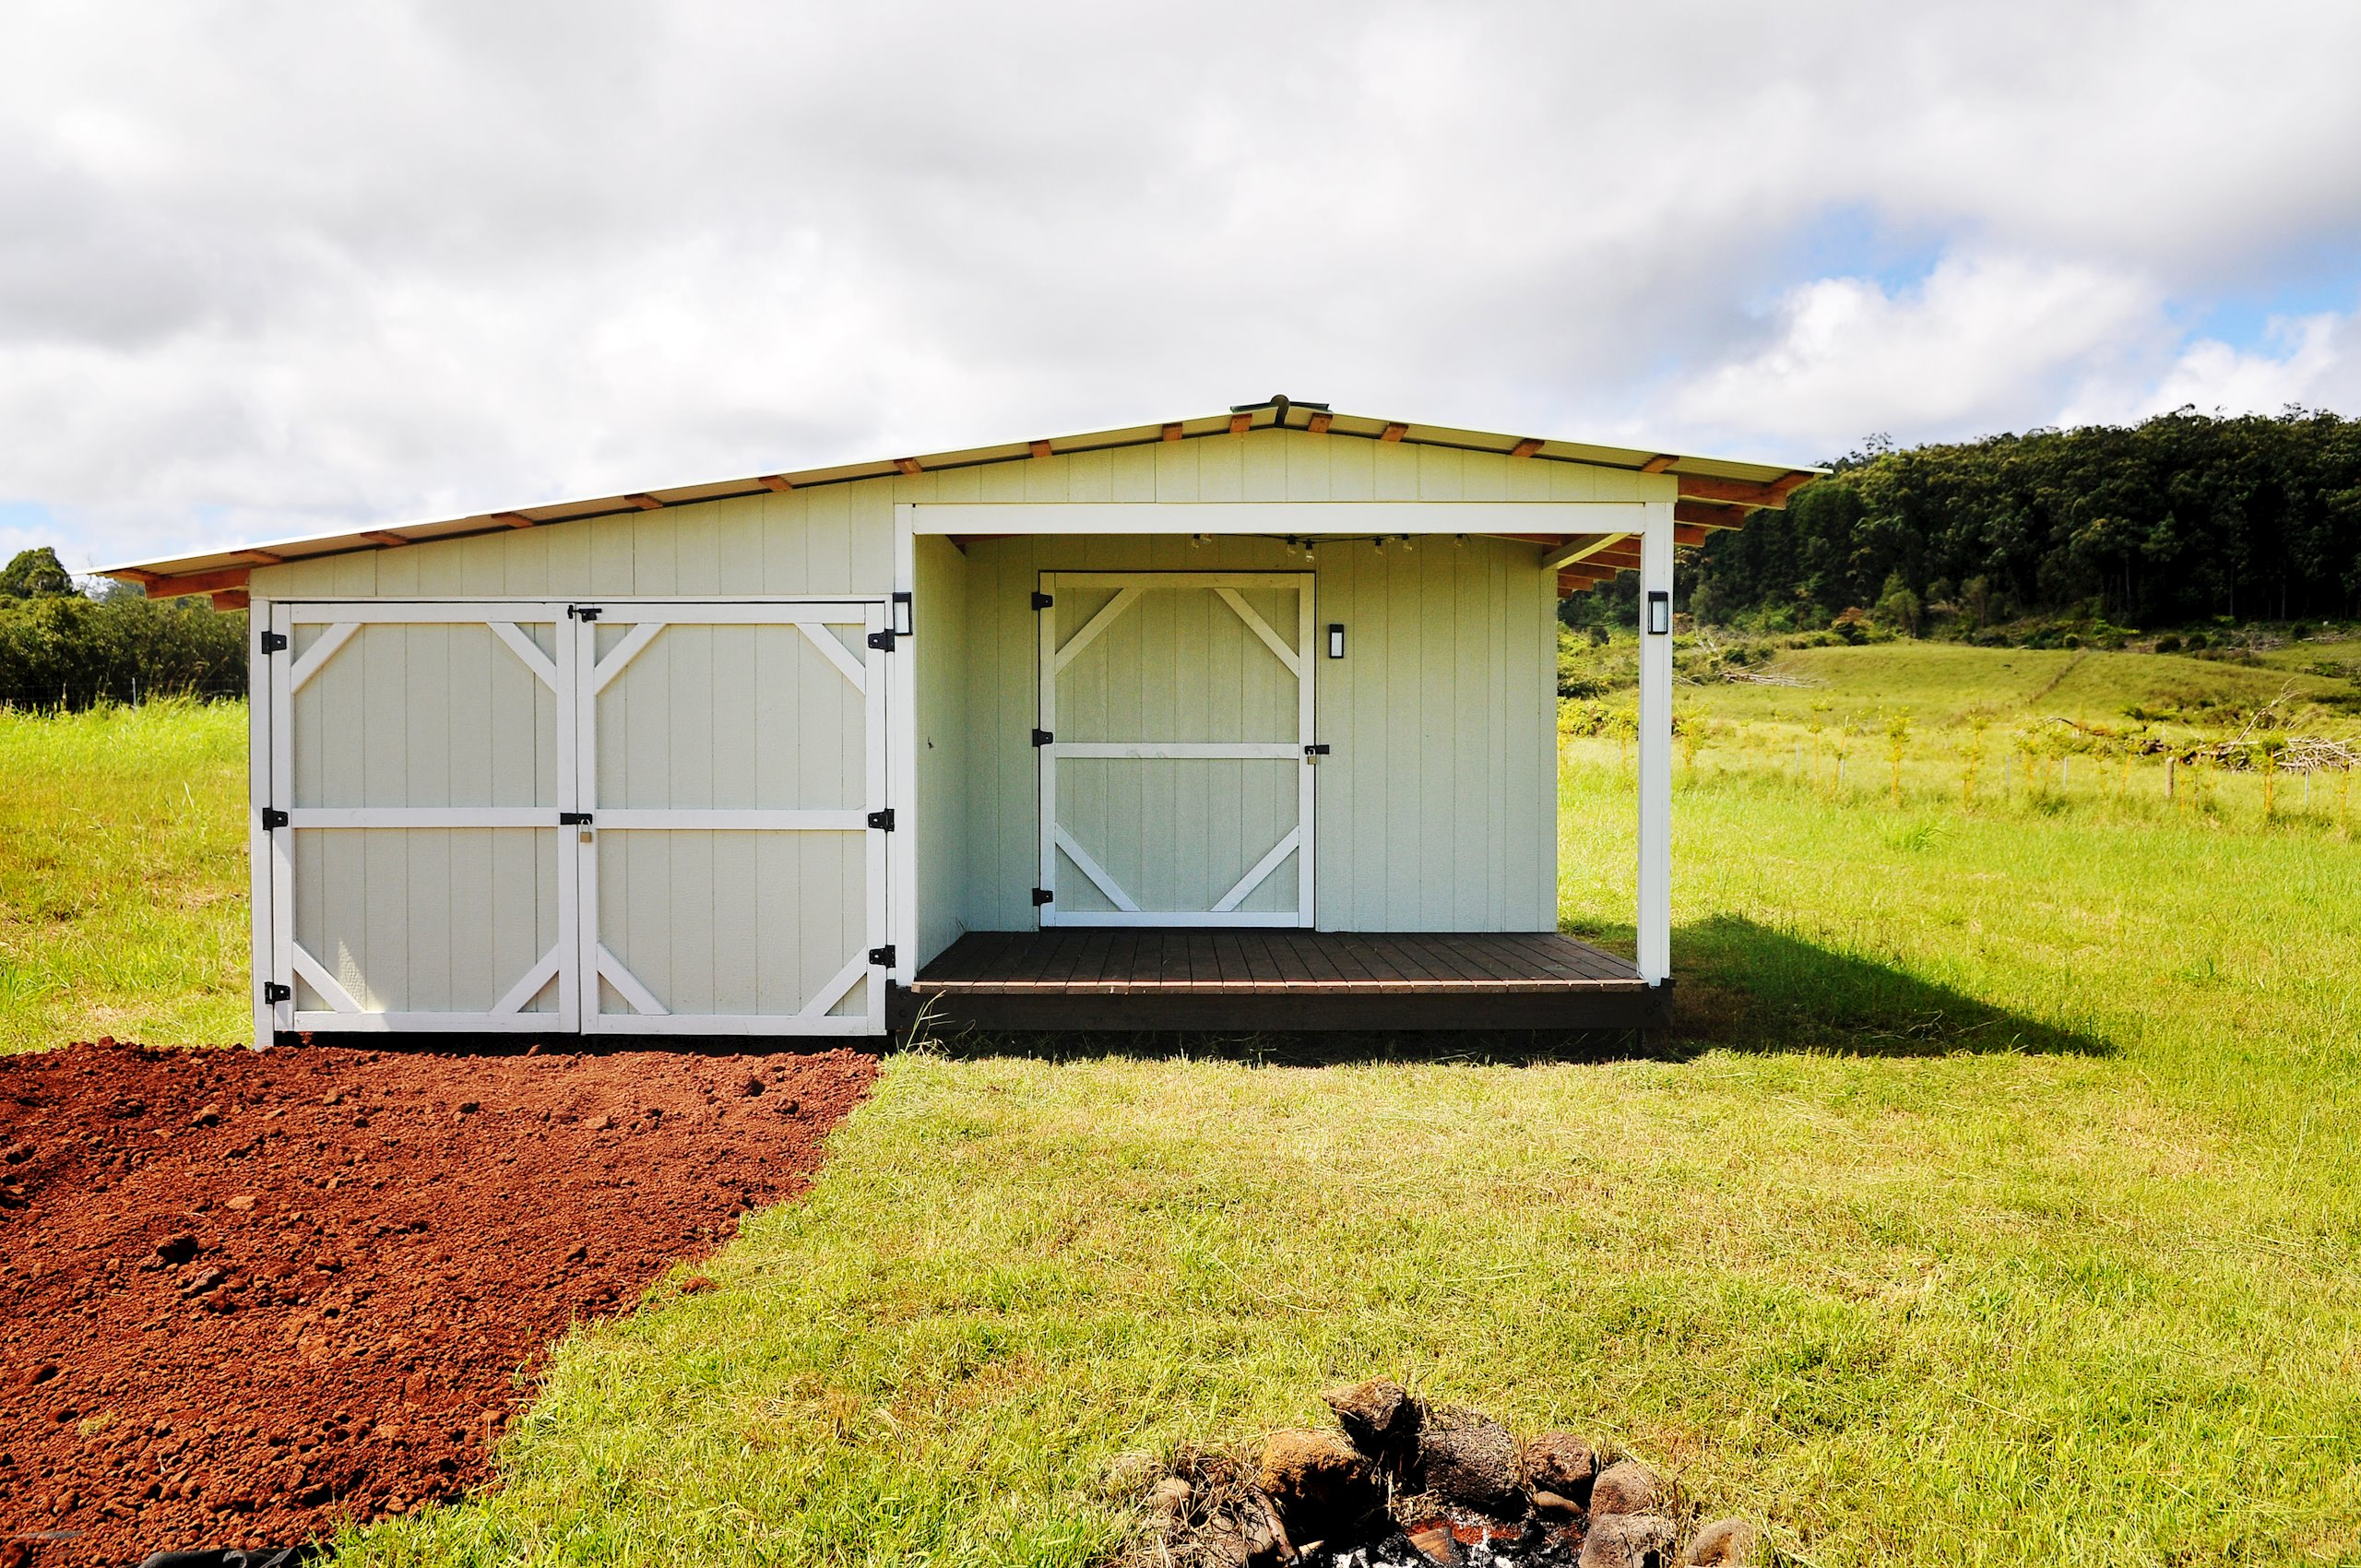 An ag shed with storage & compost toilet